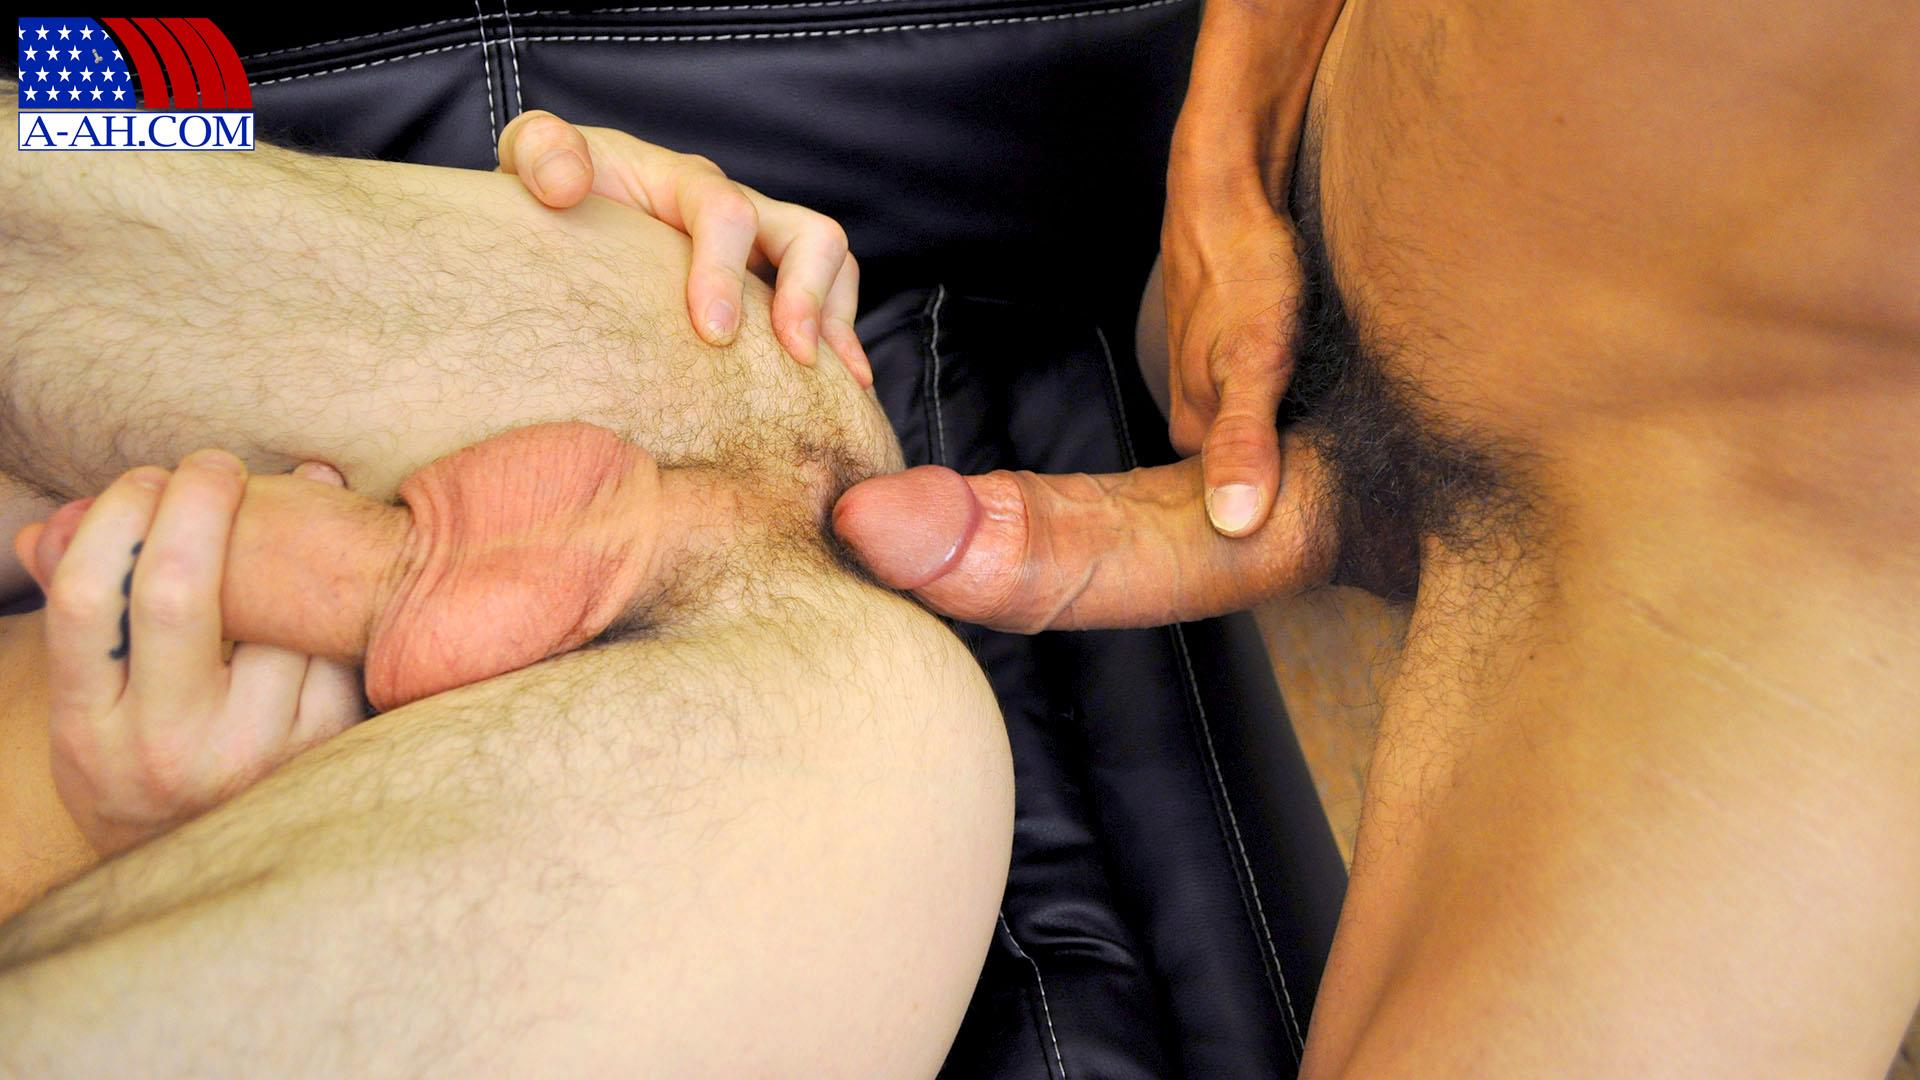 All American Heroes Navy Petty Officer Eddy fucking Army Sergeant Miles Big Uncut Cock Amateur Gay Porn 03